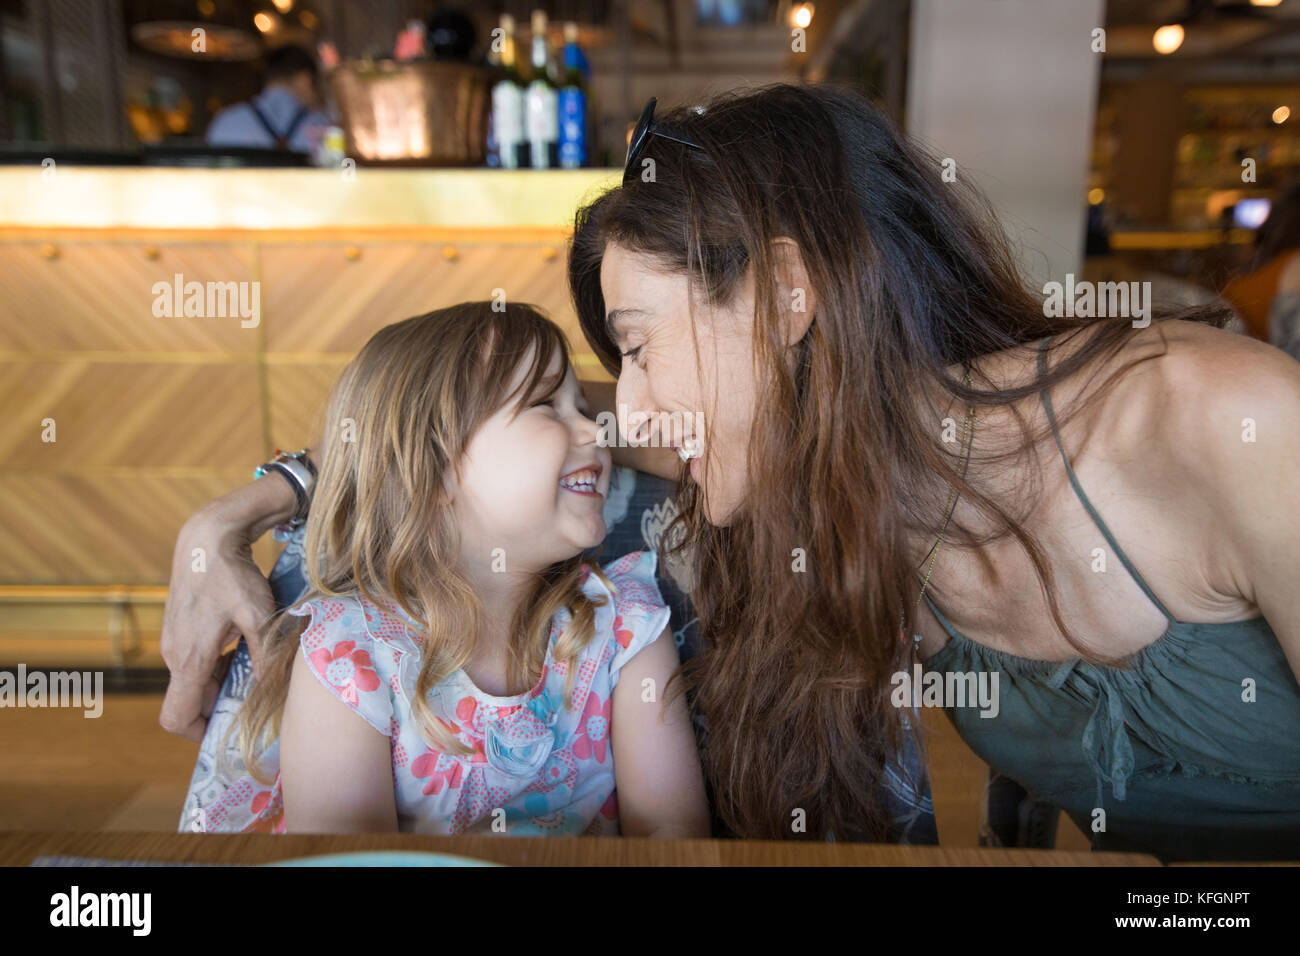 three years old blonde girl looking to woman mother laughing sitting in restaurant - Stock Image